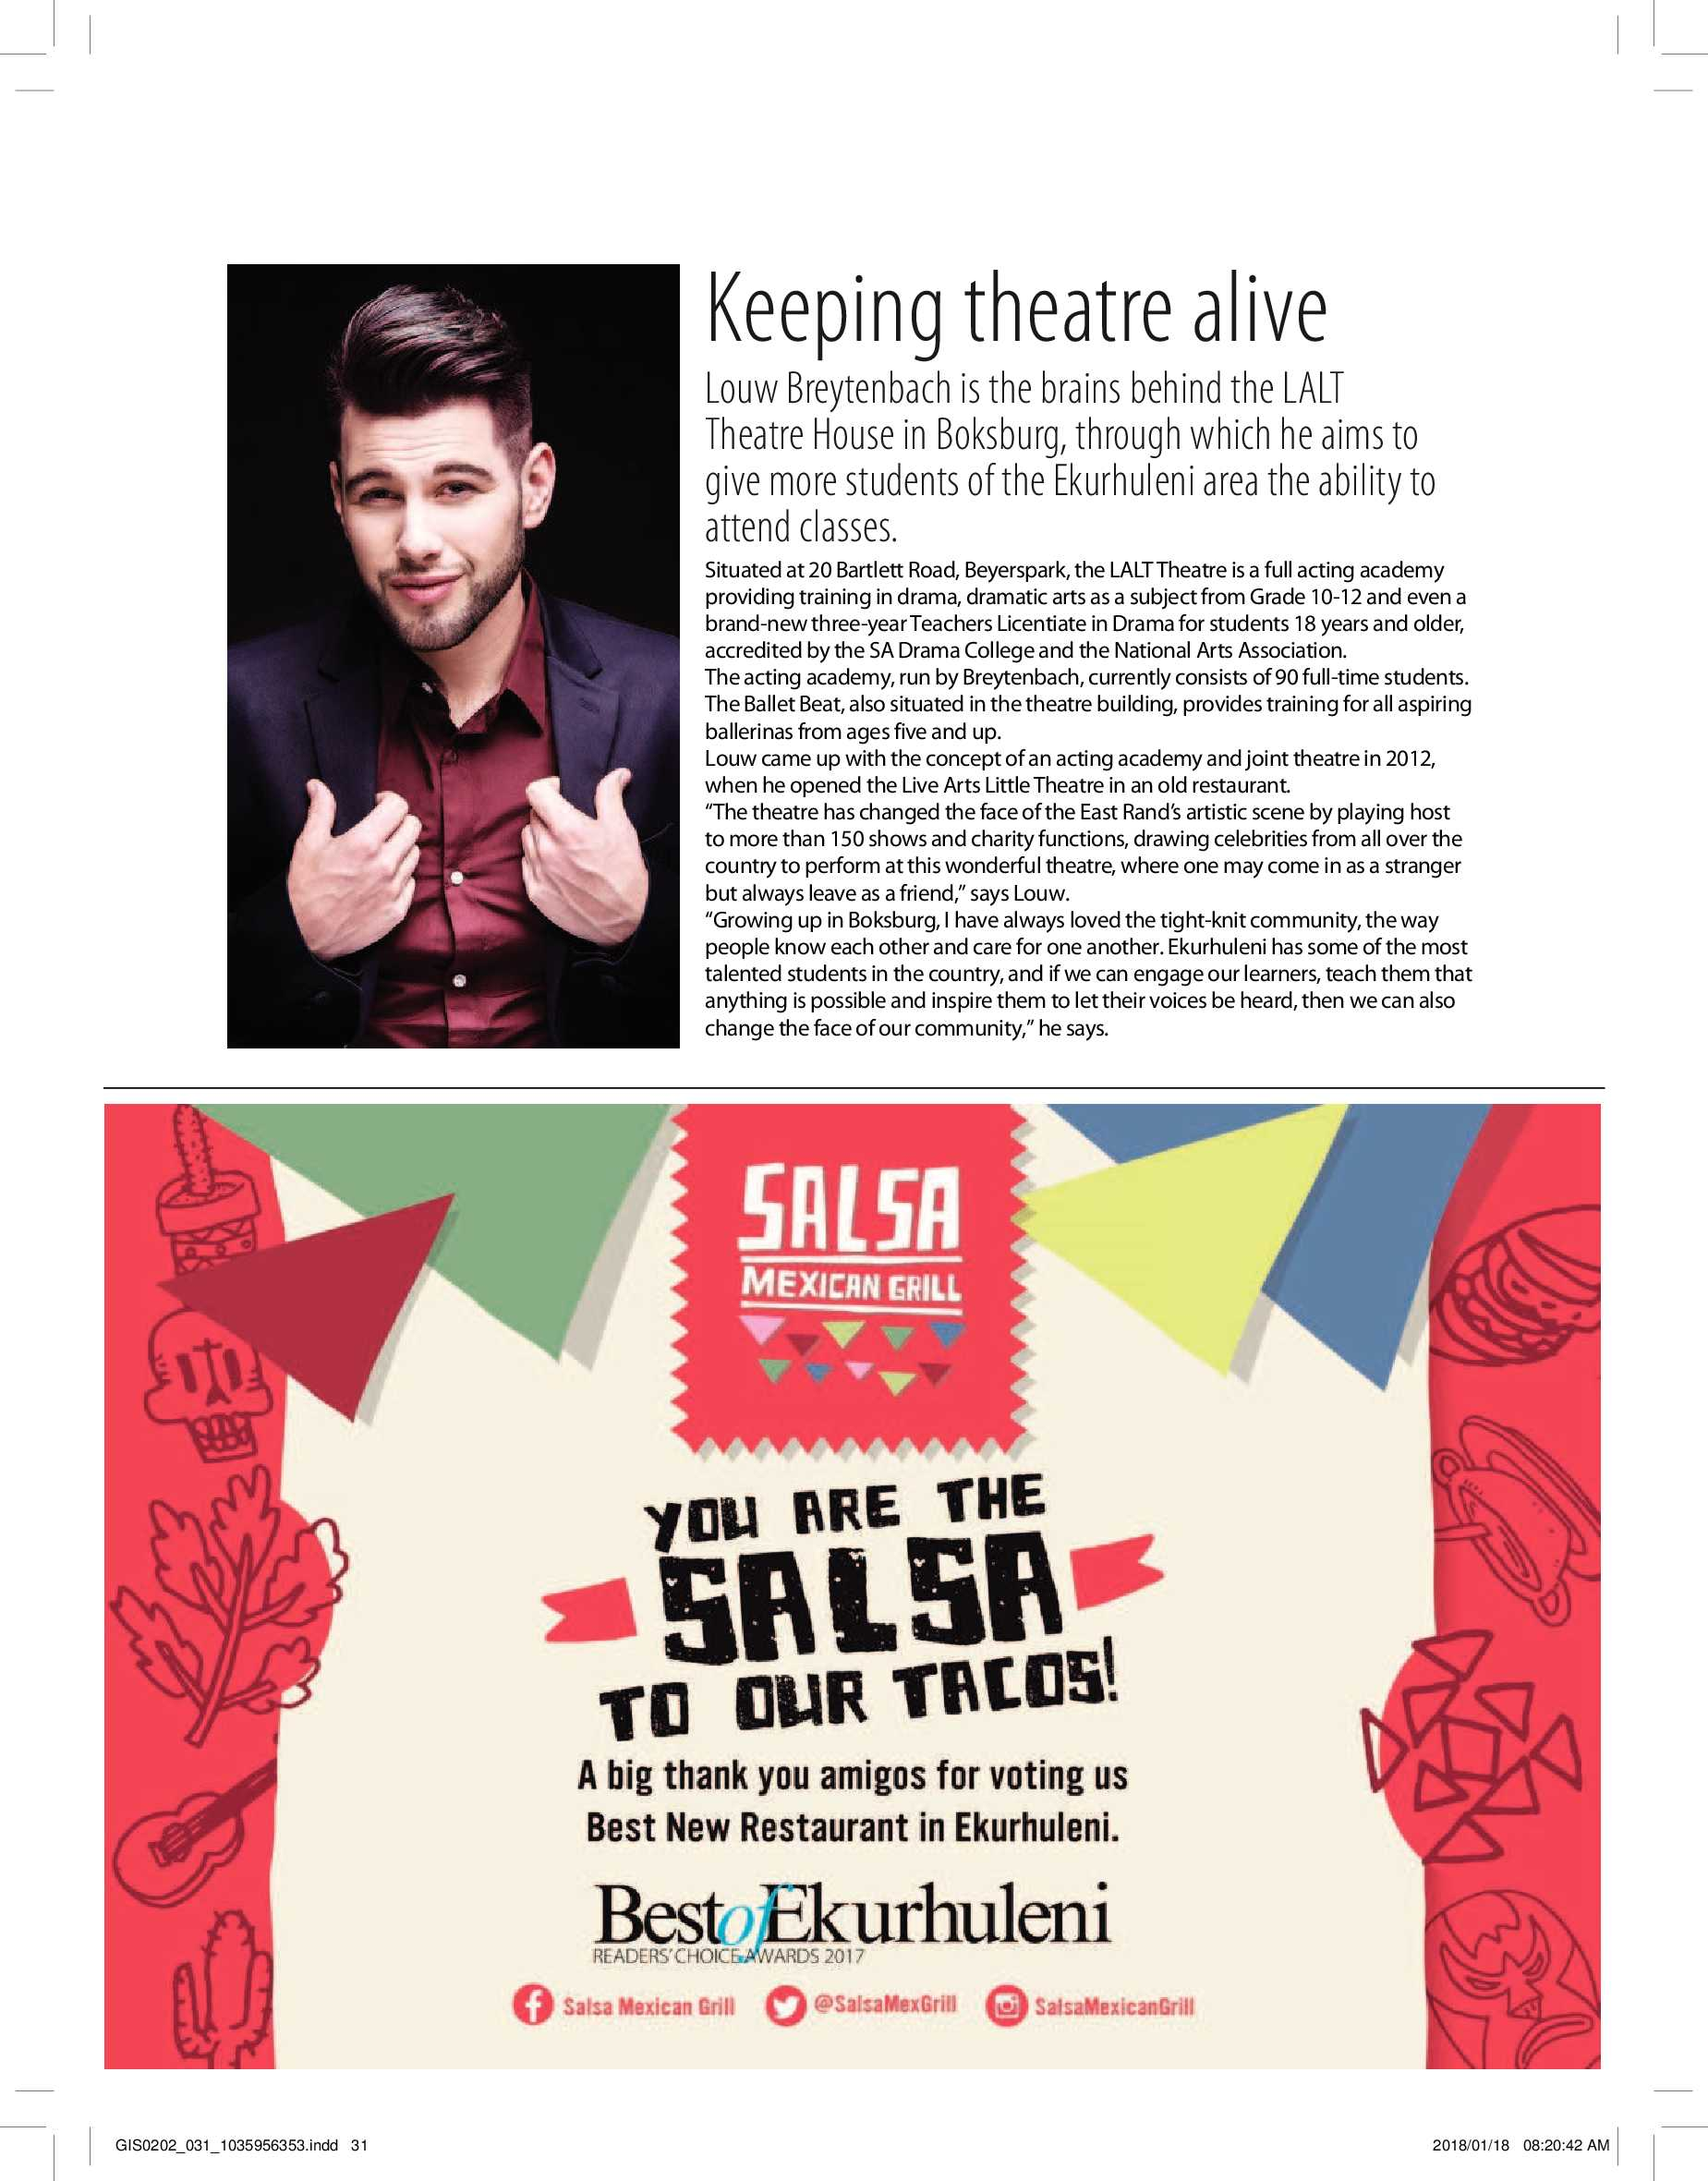 get-south-february-2018-epapers-page-31